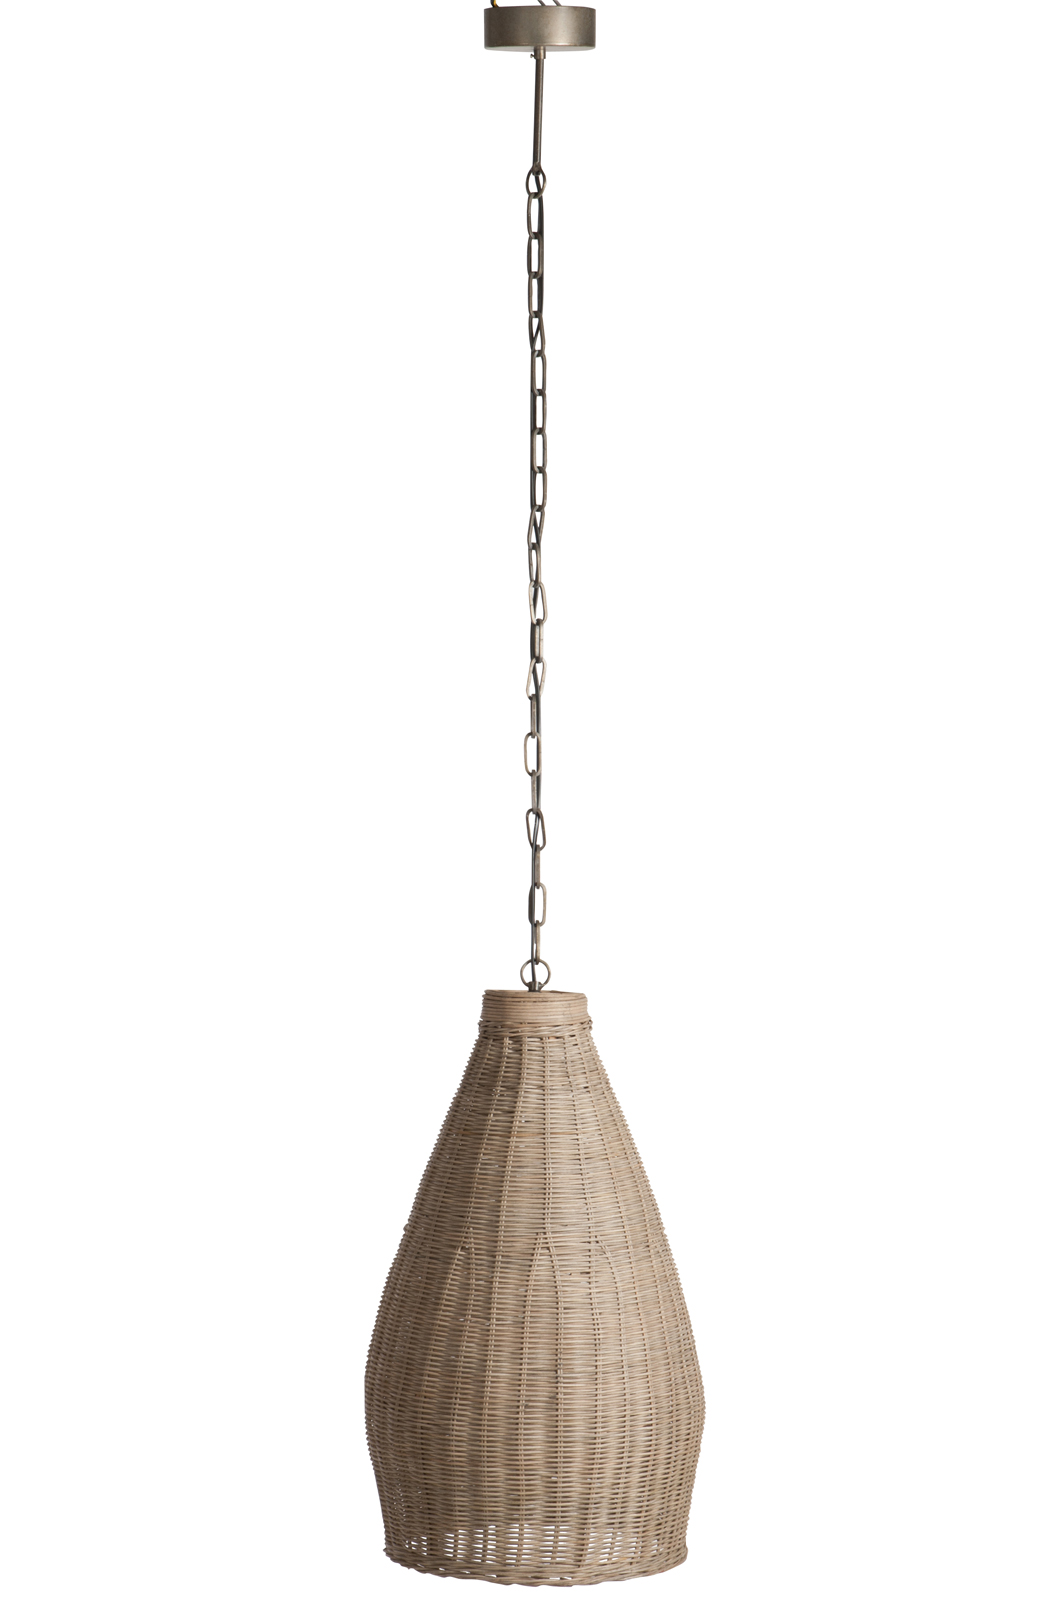 Plafonnier Bois Naturel Plafonnier Long En Bambou Naturel Et Suspension Métal 37x37x165cm